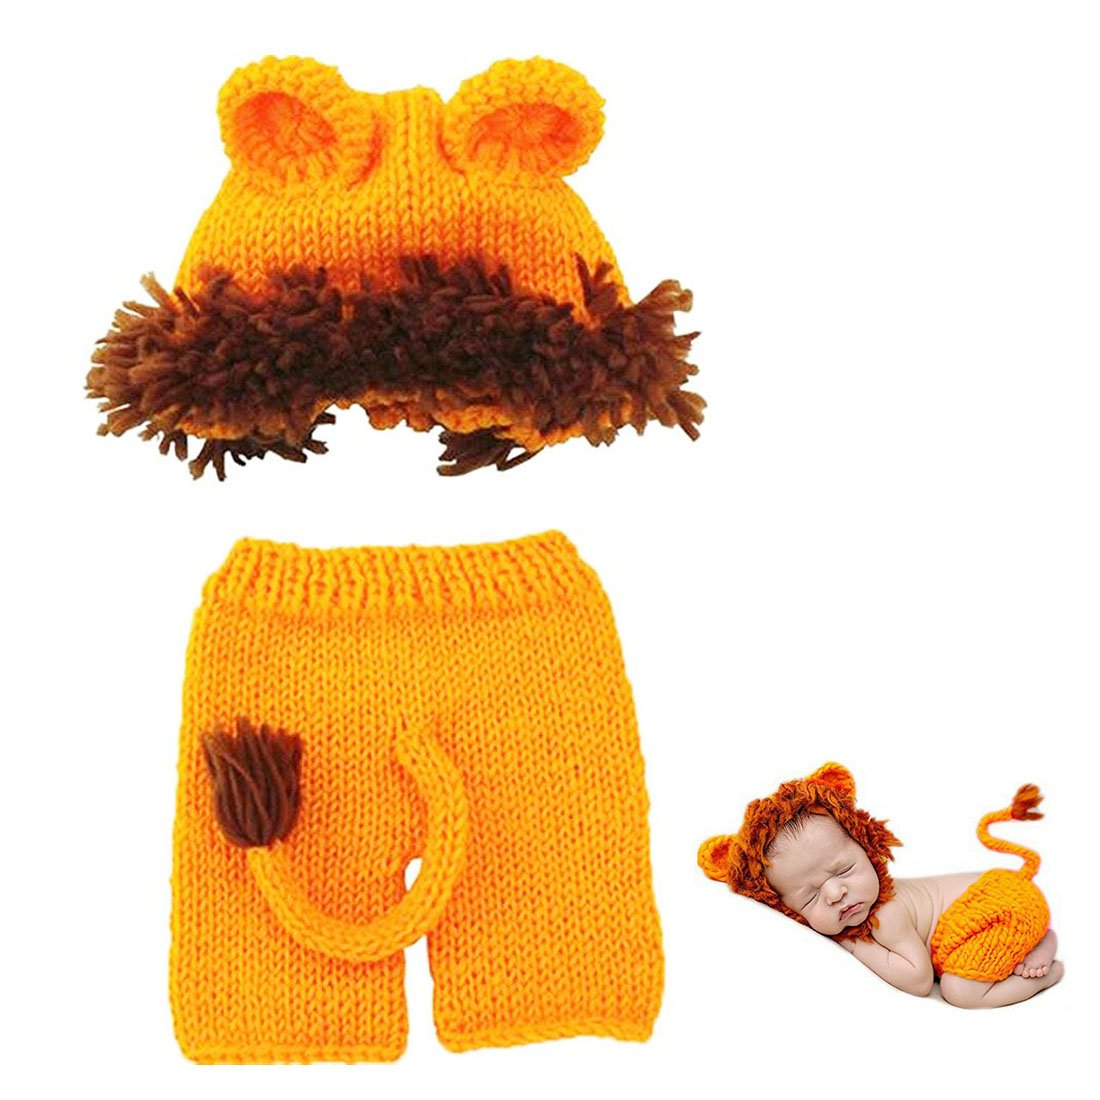 MSFS Baby Baby Crochet Knitted Photo Photography Props Handmade Baby Hat Diaper Outfit